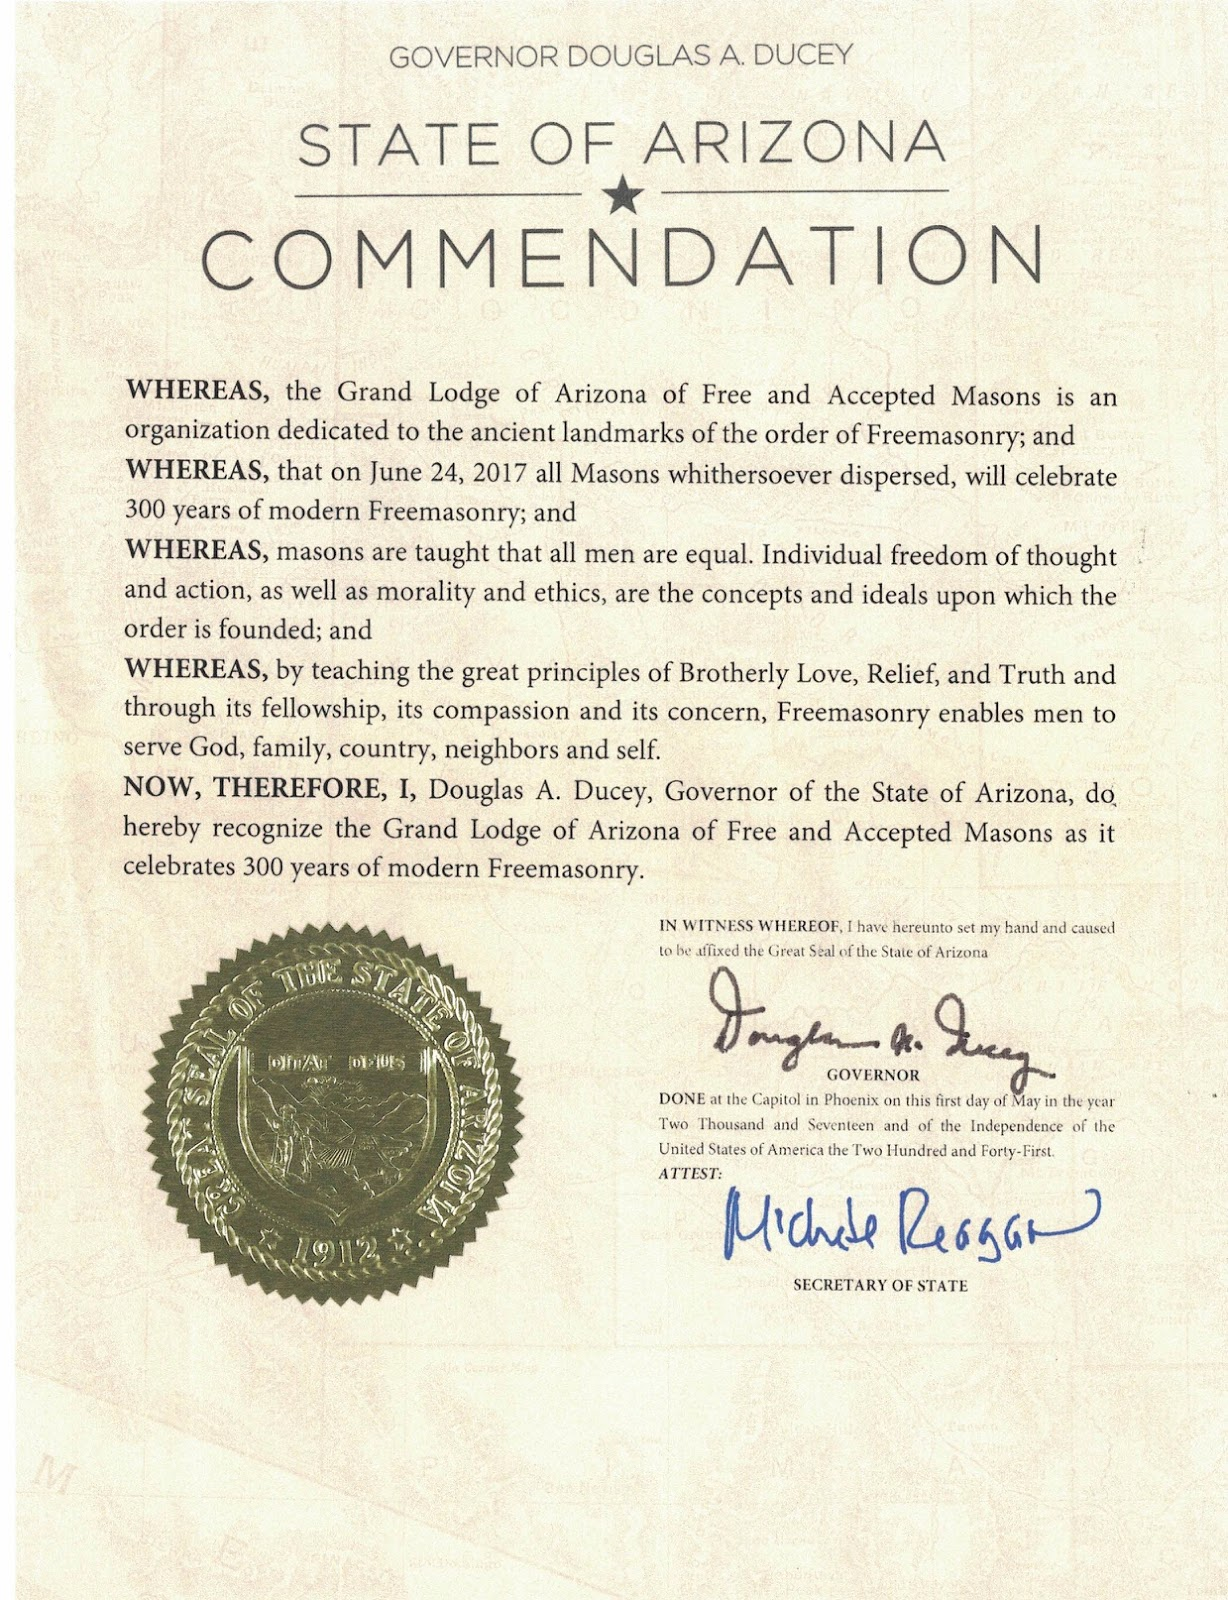 Arizona's Governor Douglas Ducey Has Officially Proclaimed June 24th, 2017  As 'freemasonry Day' All Across The Grand Canyon State Tomemorate The  300th